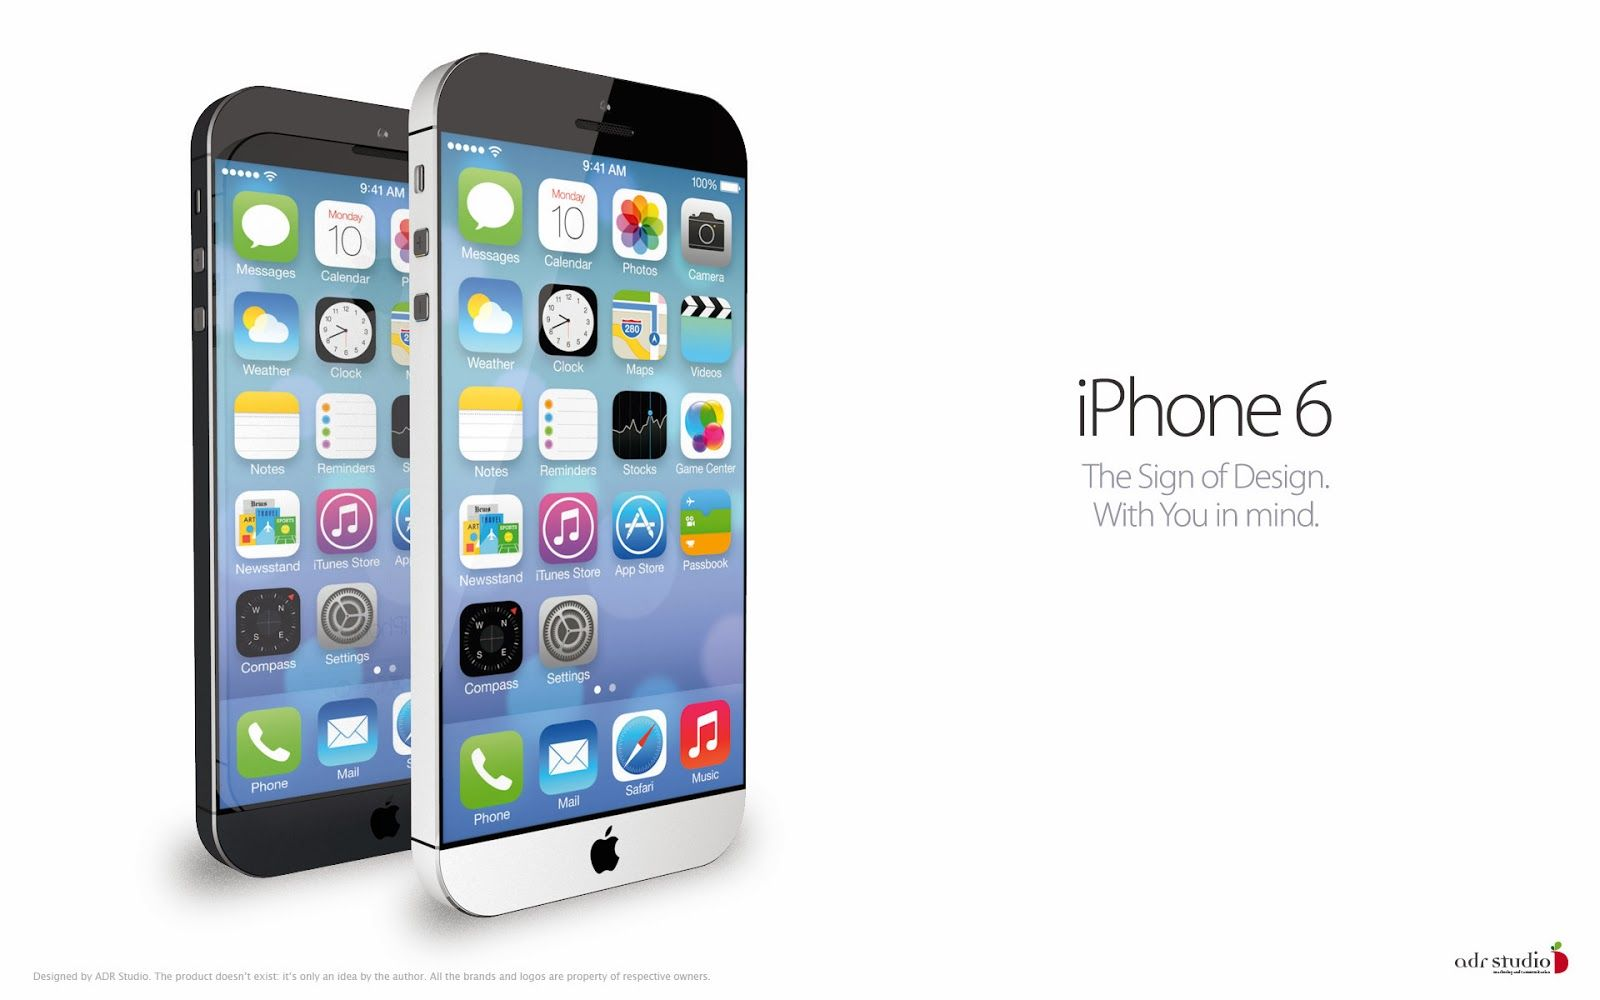 iPhone 6 Print Ad | Apple iphone 6, Apple iphone, Iphone